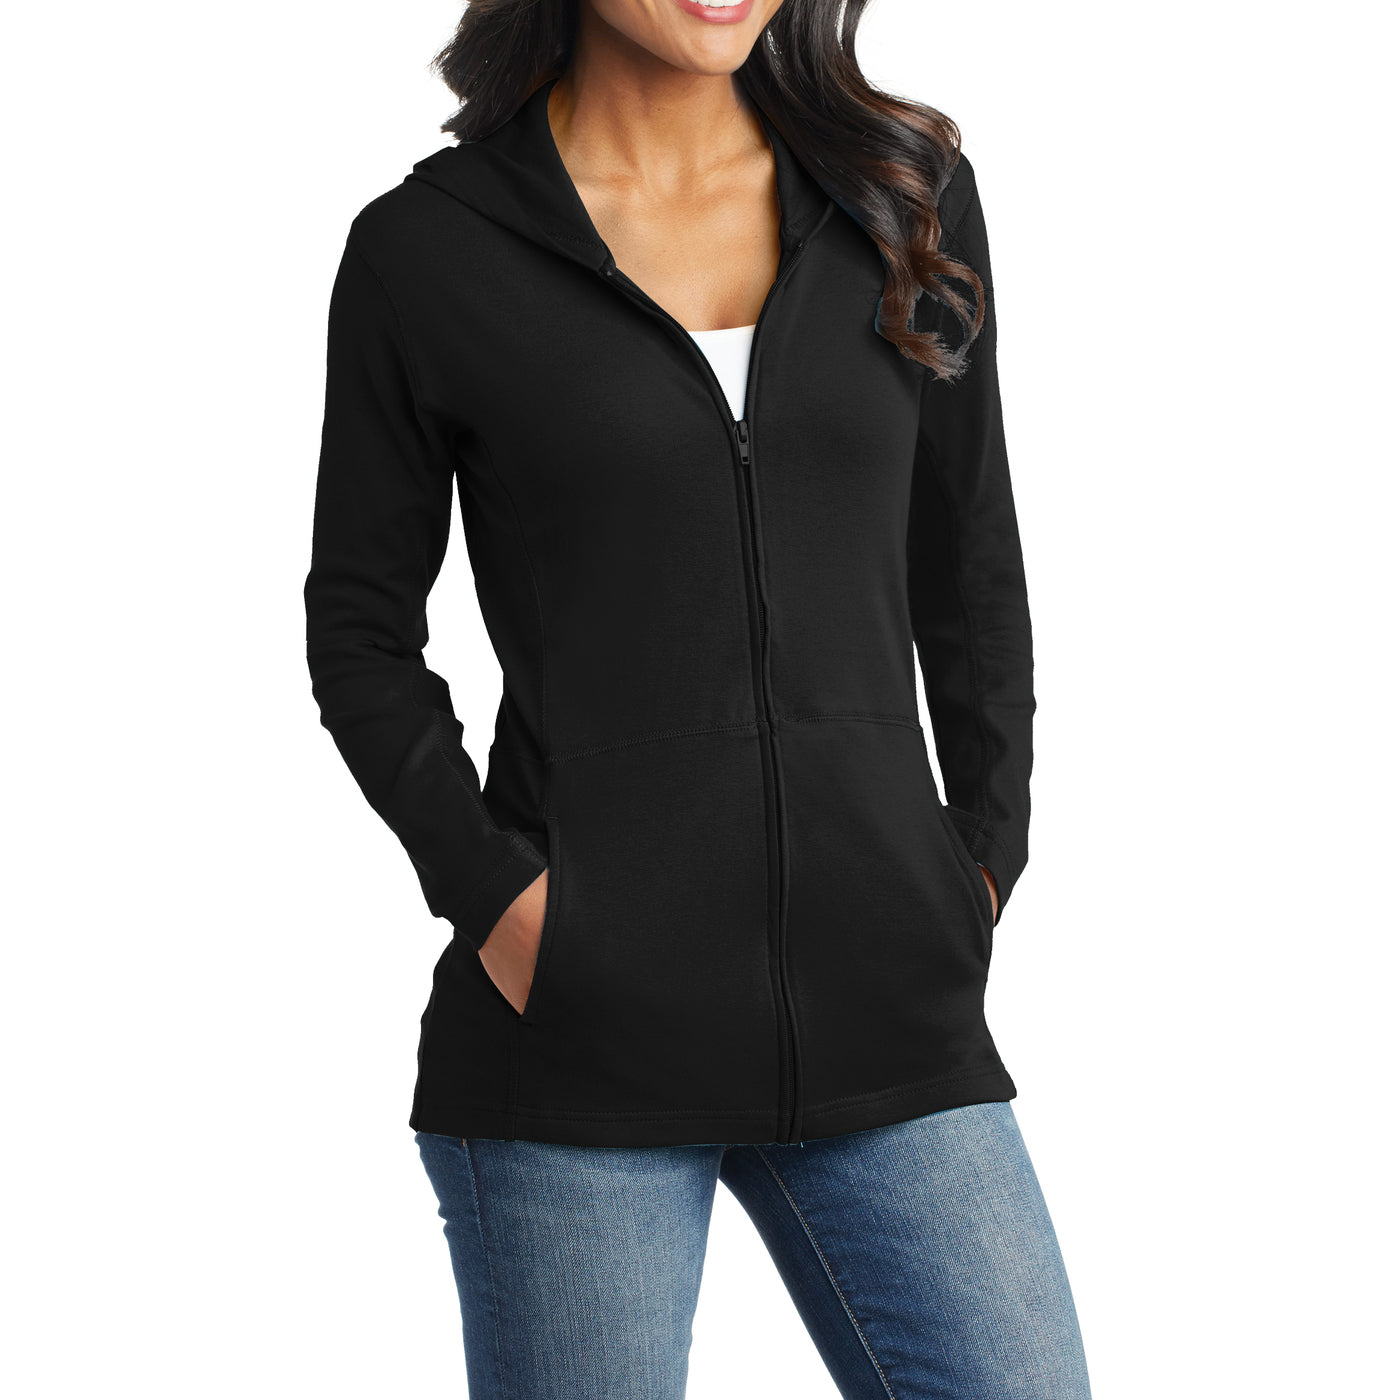 Women's Modern Stretch Cotton Full-Zip Jacket - Black - Side